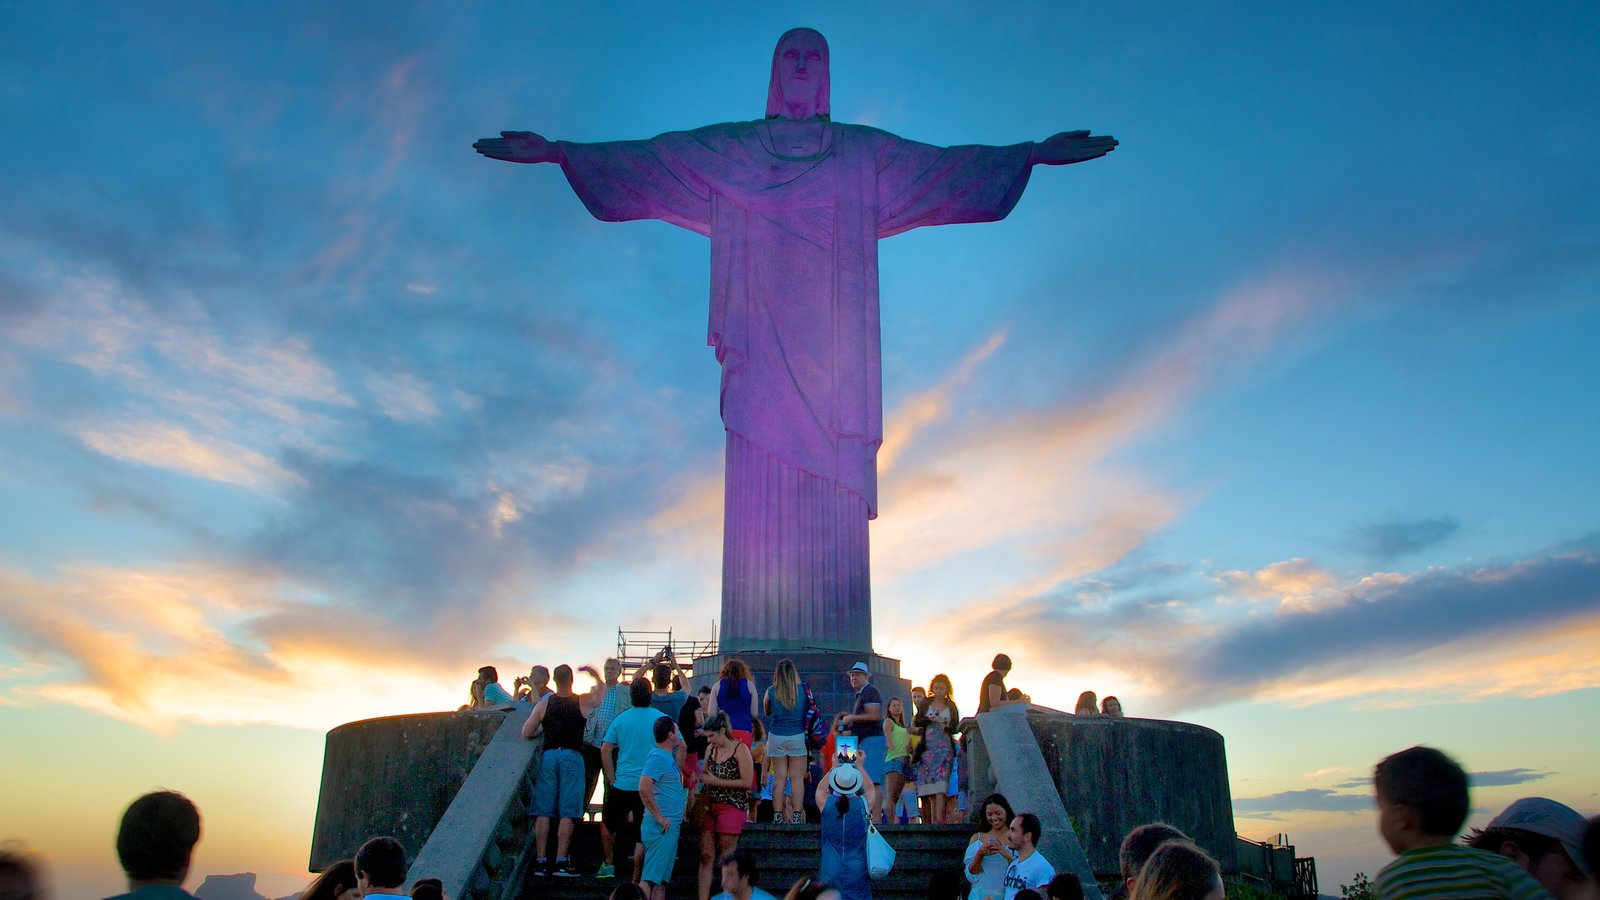 Corcovado showing religious elements, a sunset and a statue or sculpture